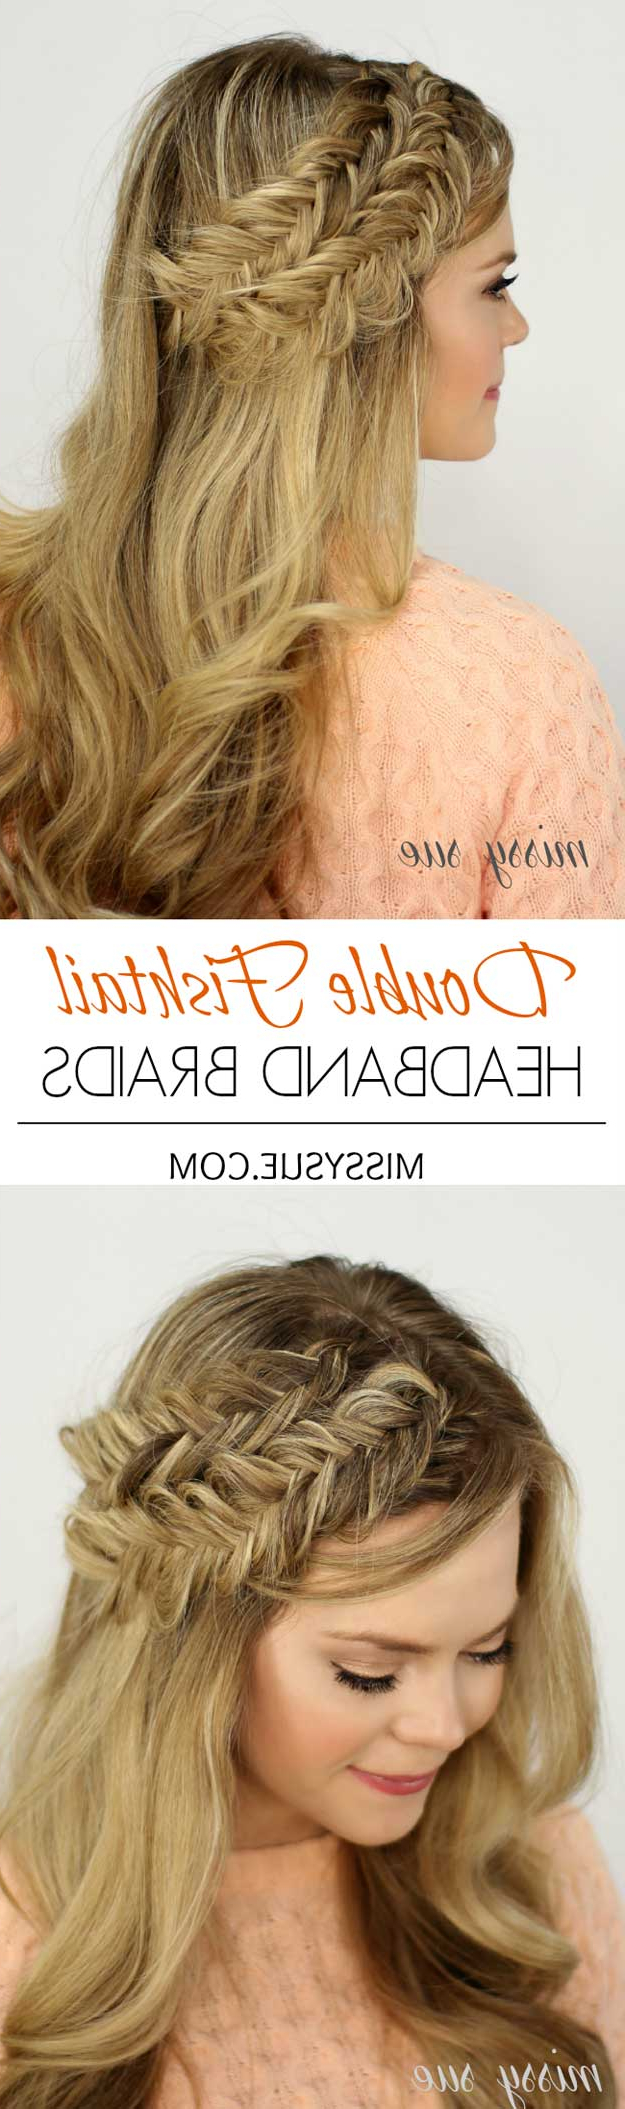 Trendy Medium Hairstyles For Women In Their 20S With 33 Best Hairstyles For Your 20S – The Goddess (View 17 of 20)